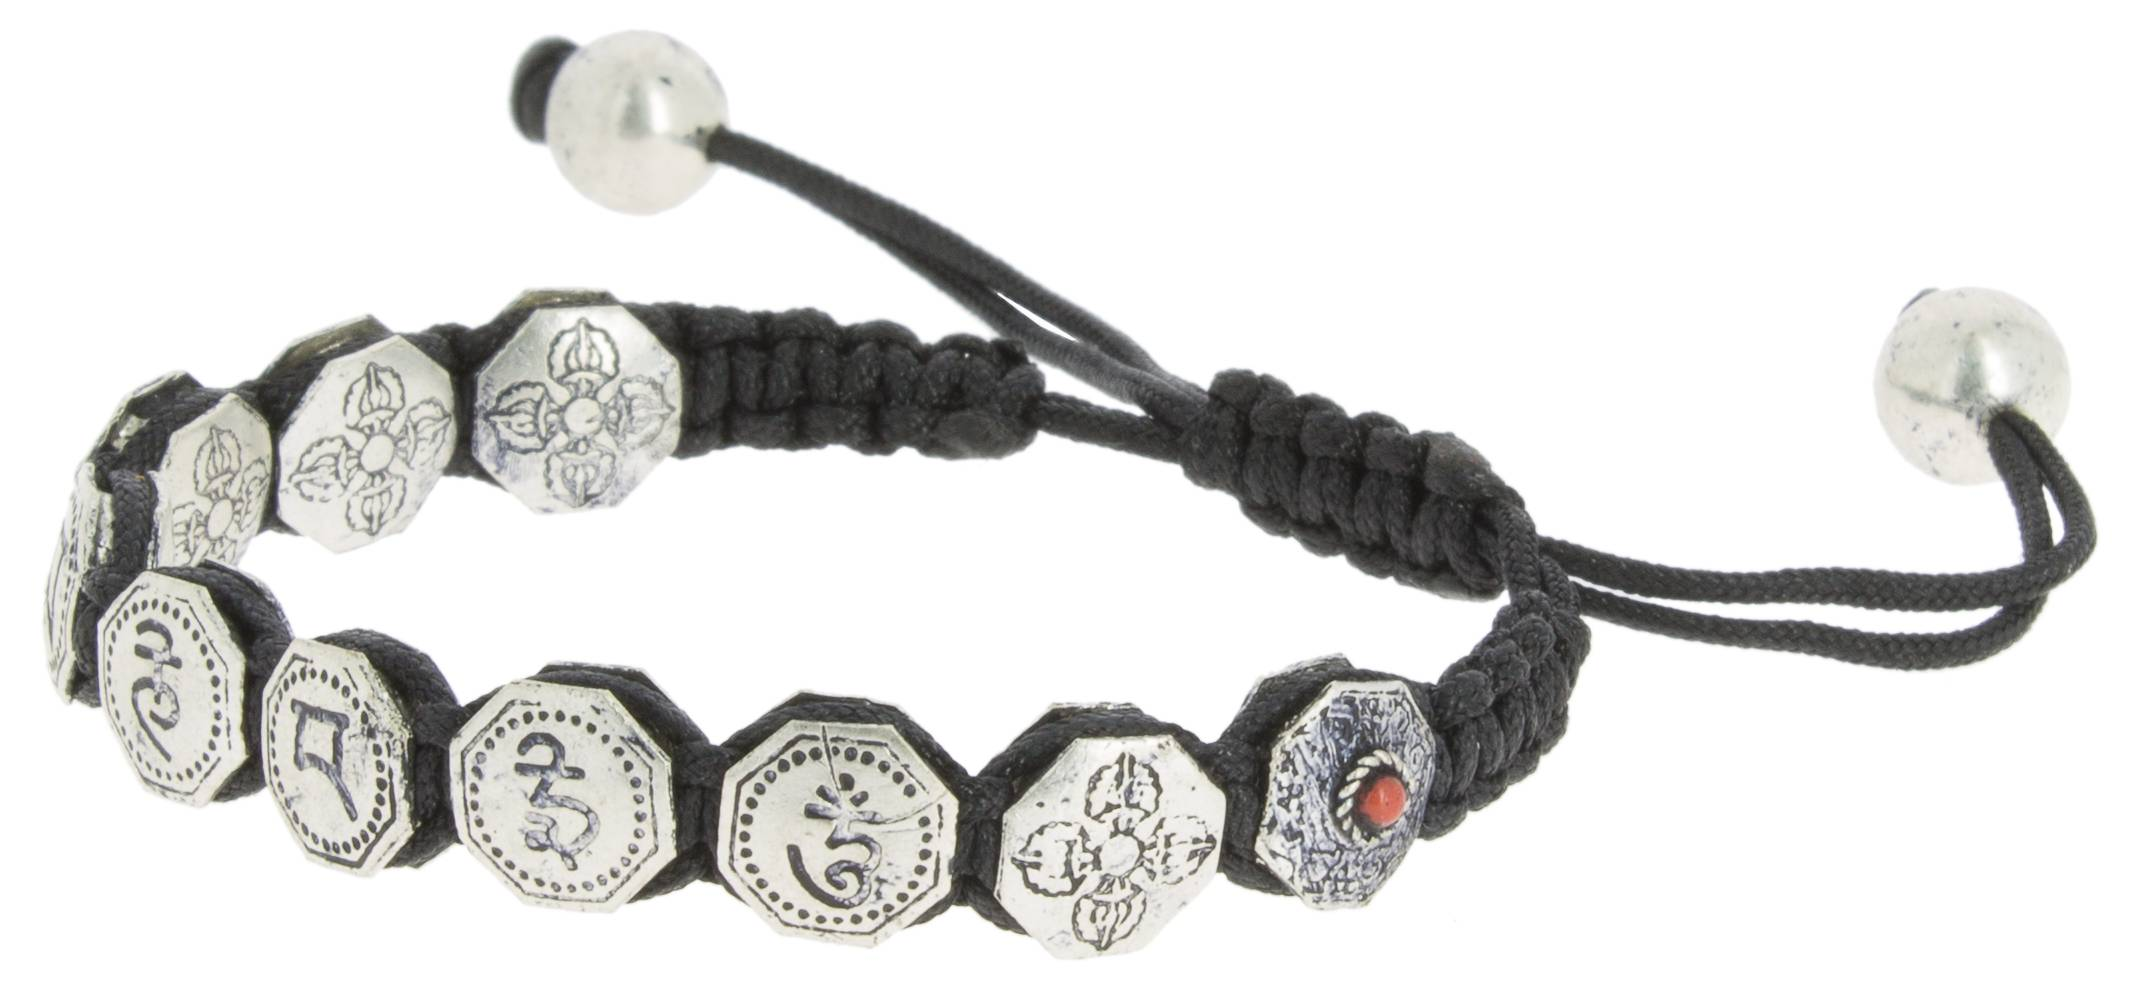 Pulsera Regulable con Mantra